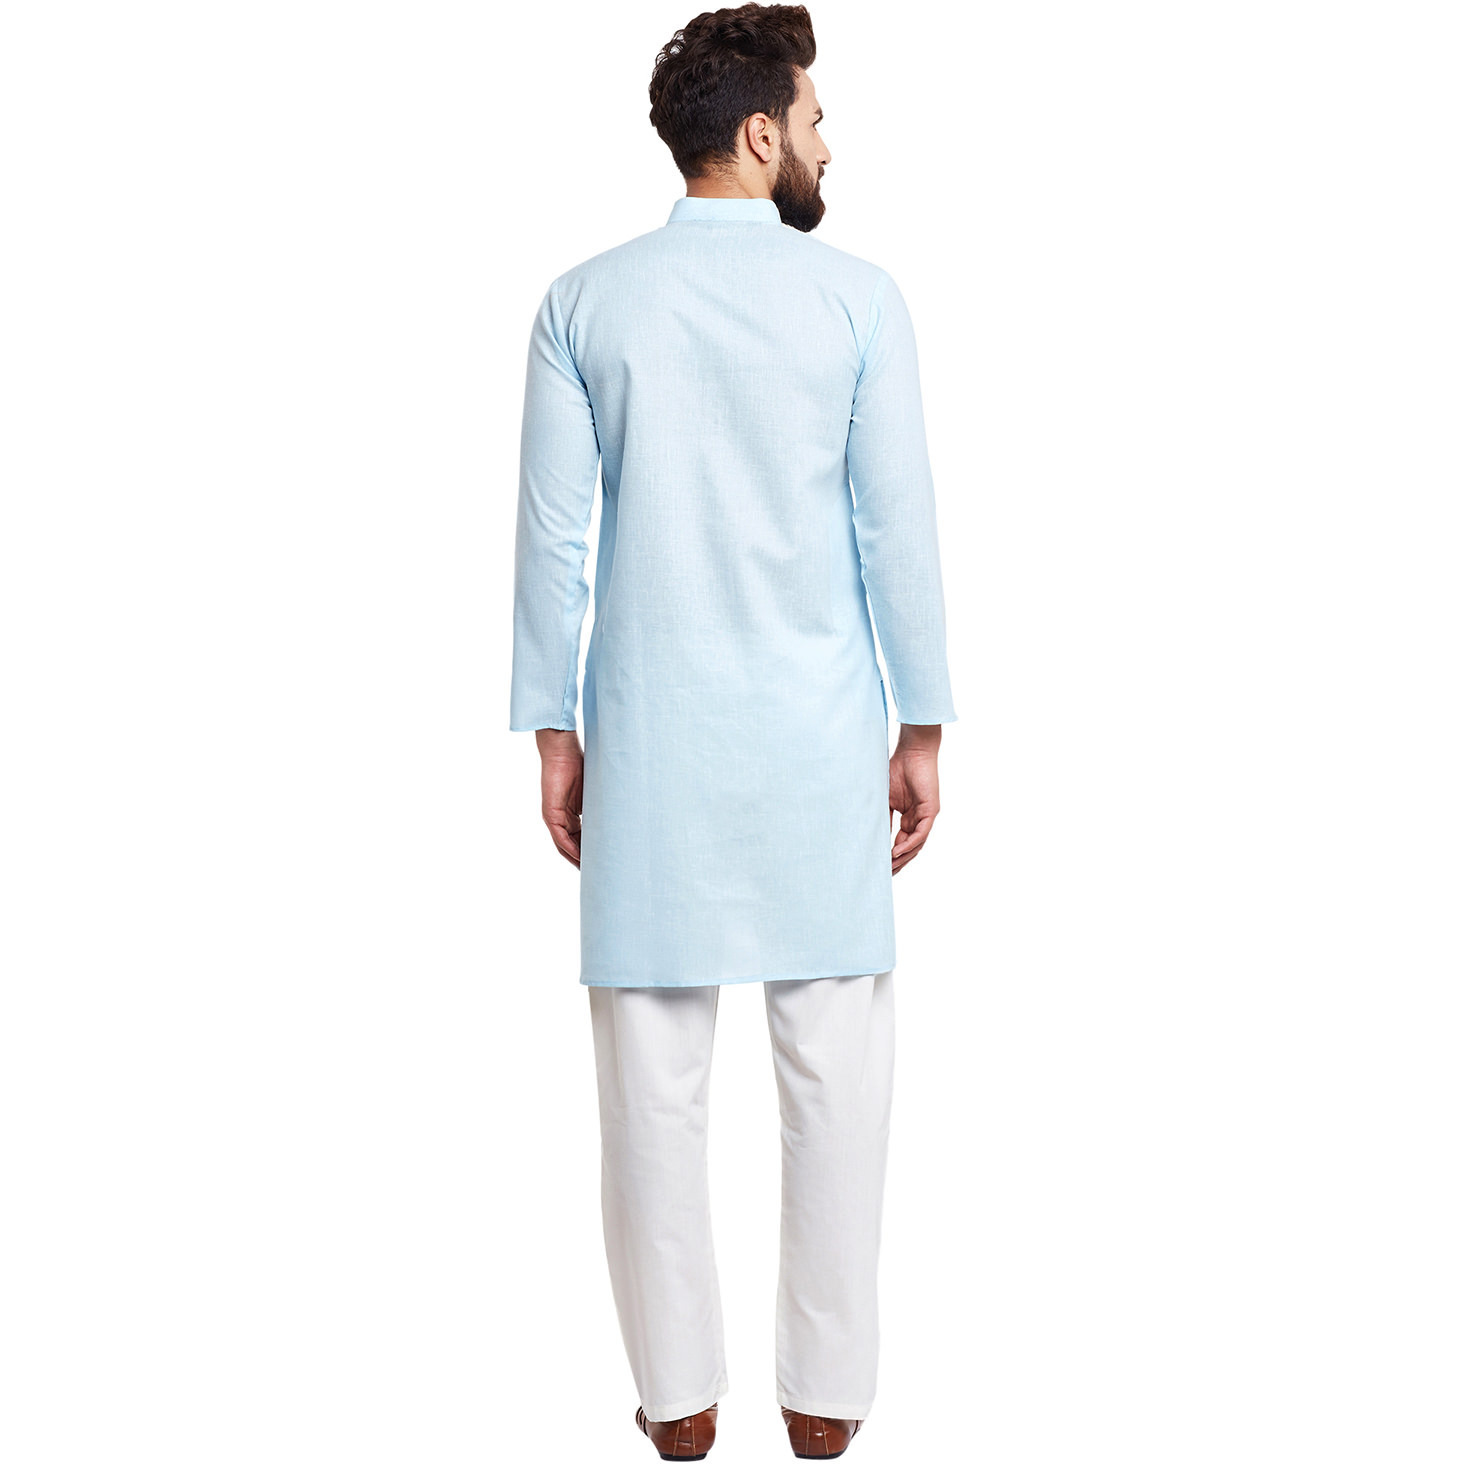 Mens Silk Sky Blue Solid Designer Kurta Churidaar Set Long Sleeve Ban collar Regular Fit